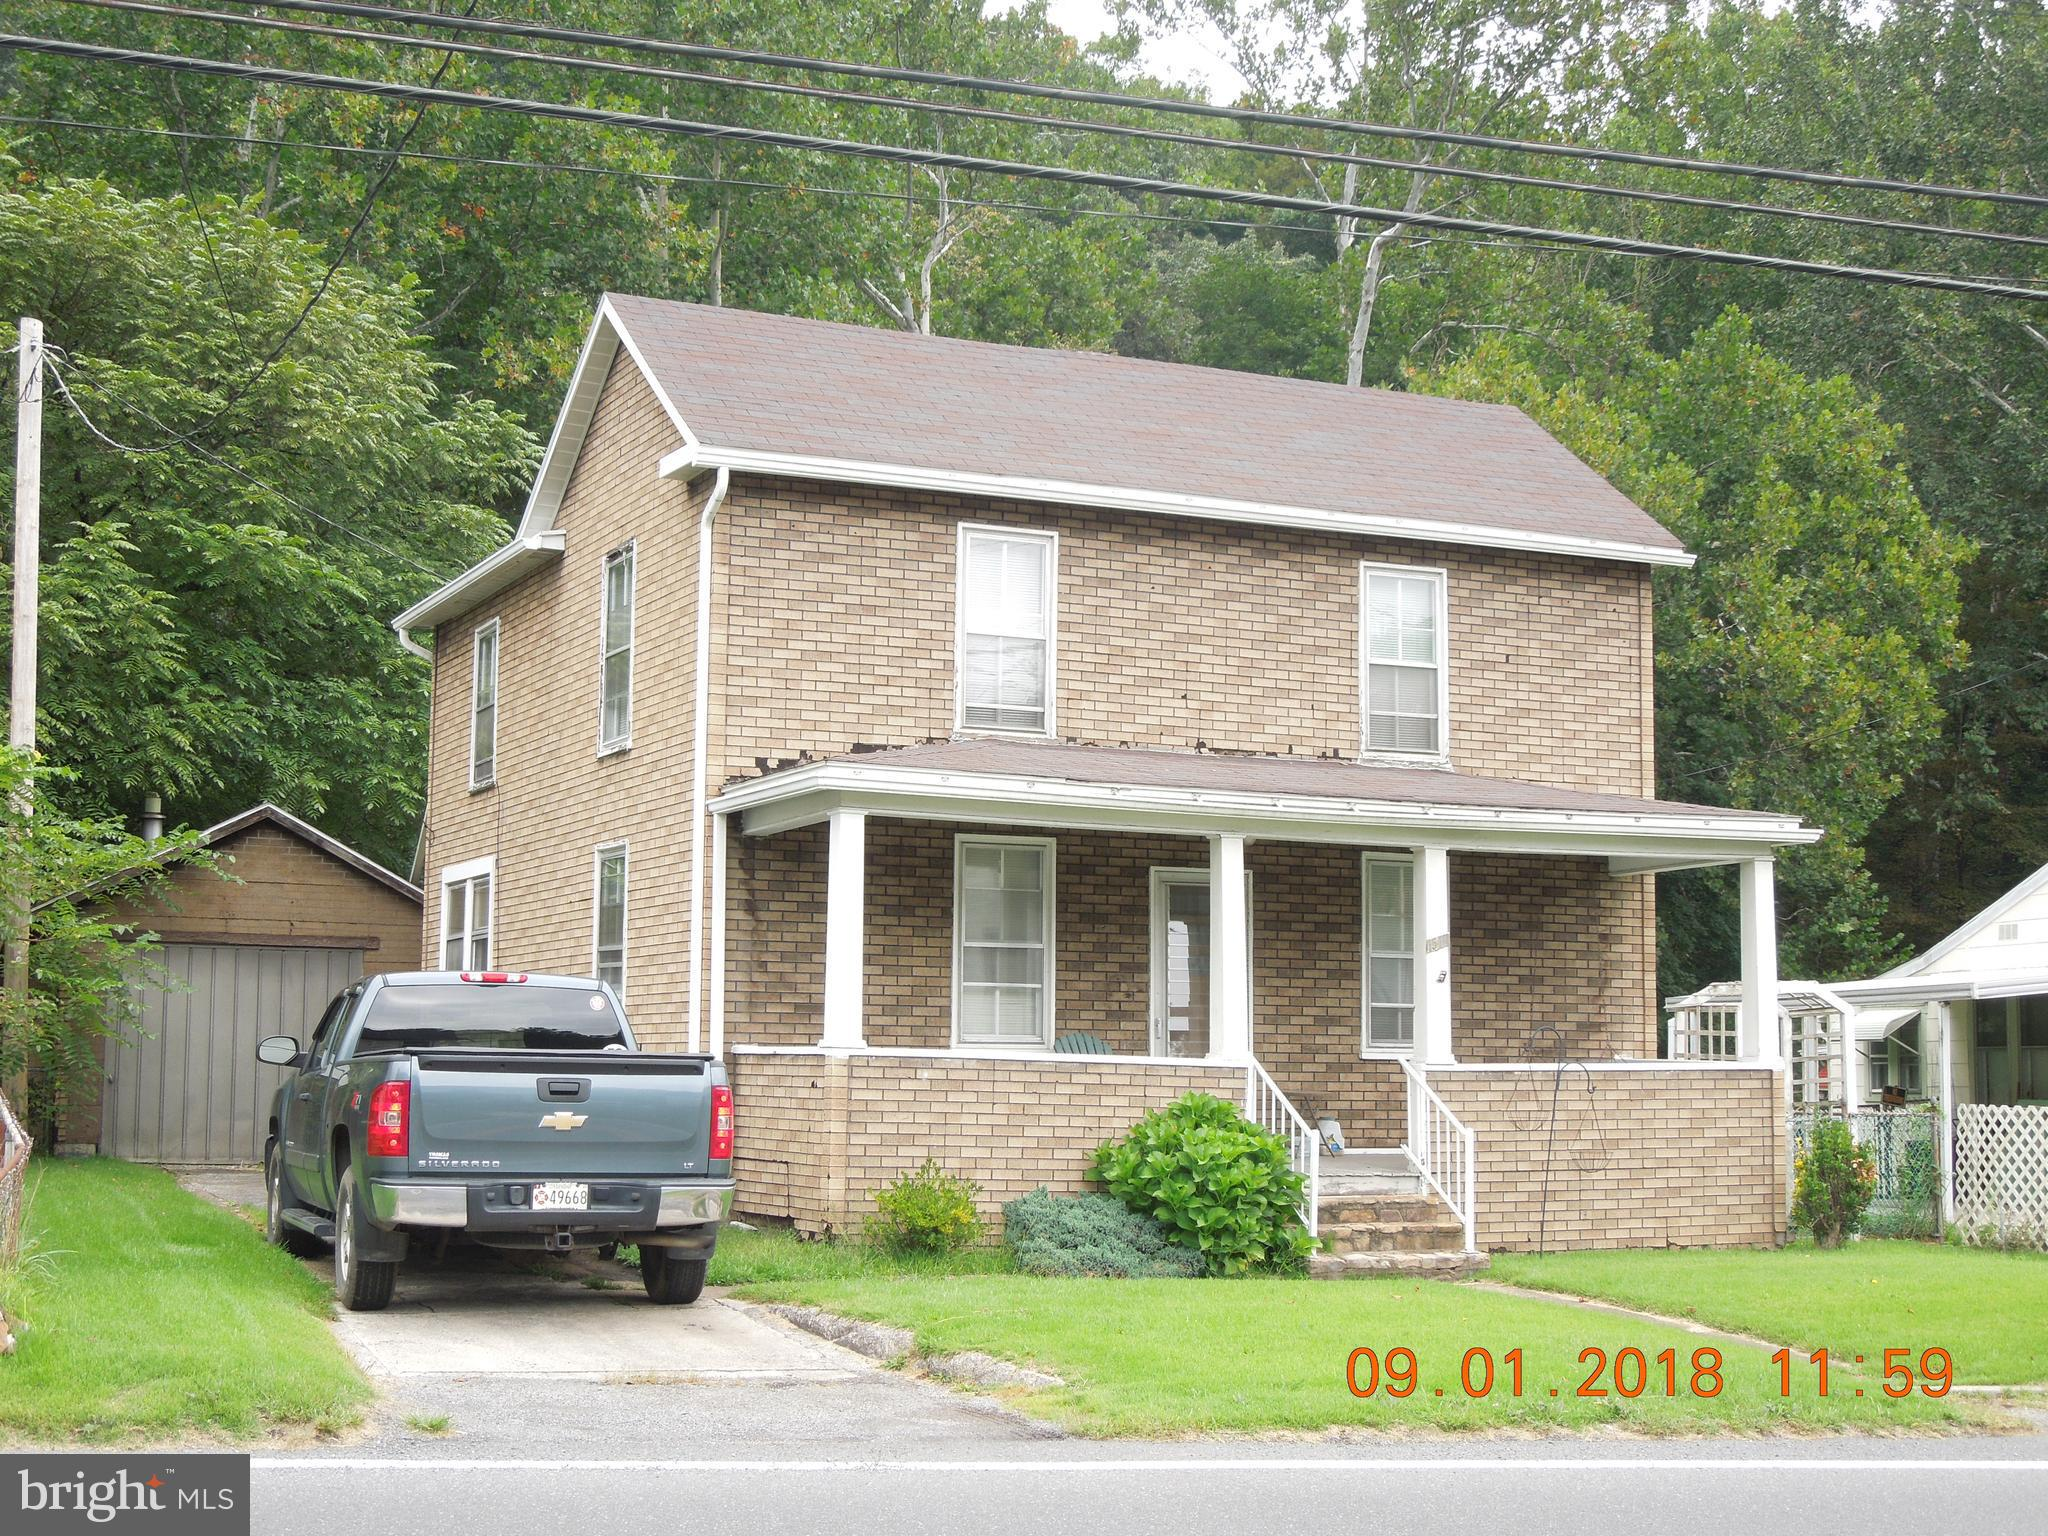 15111 MOUNT SAVAGE ROAD NW, MOUNT SAVAGE, MD 21545